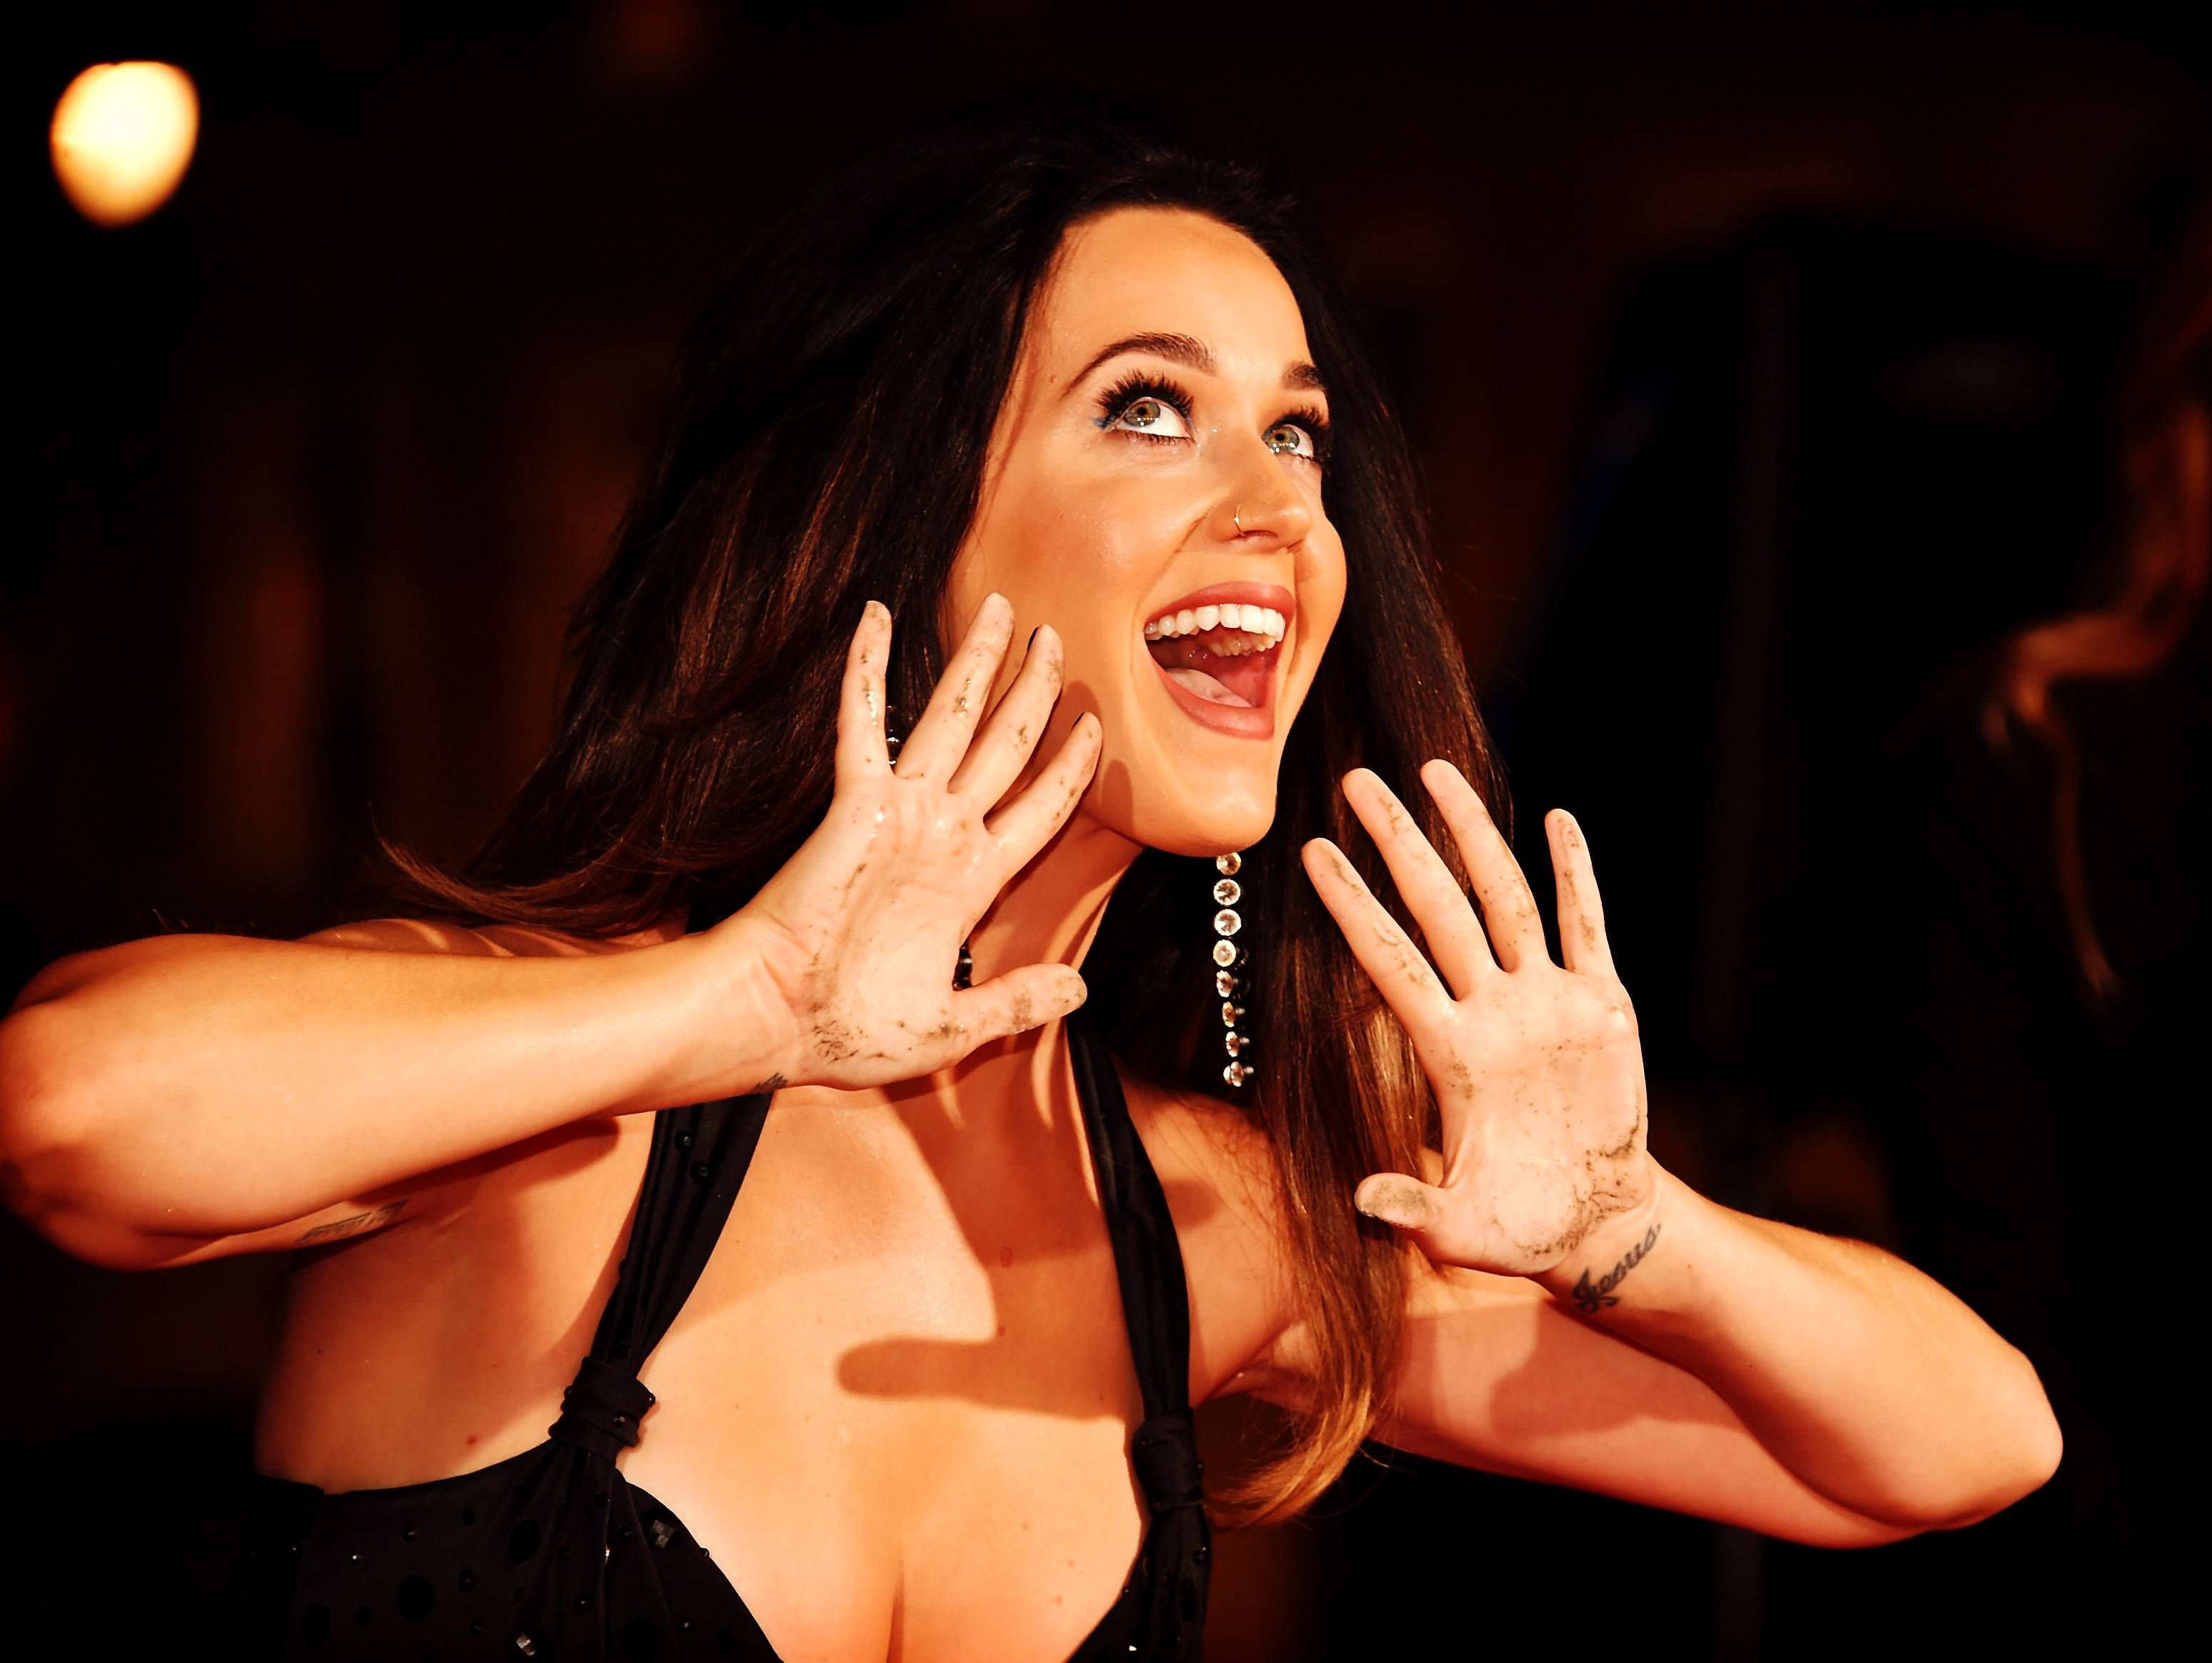 HOLLYWOOD, CA - SEPTEMBER 08: (Editors Note: Image has been processed using digital filters) Singer Katy Perry is honored during her hand print ceremony at TCL Chinese Theatre IMAX Forecourt on September 8, 2015 in Hollywood, California. (Photo by Alberto E. Rodriguez/Getty Images)